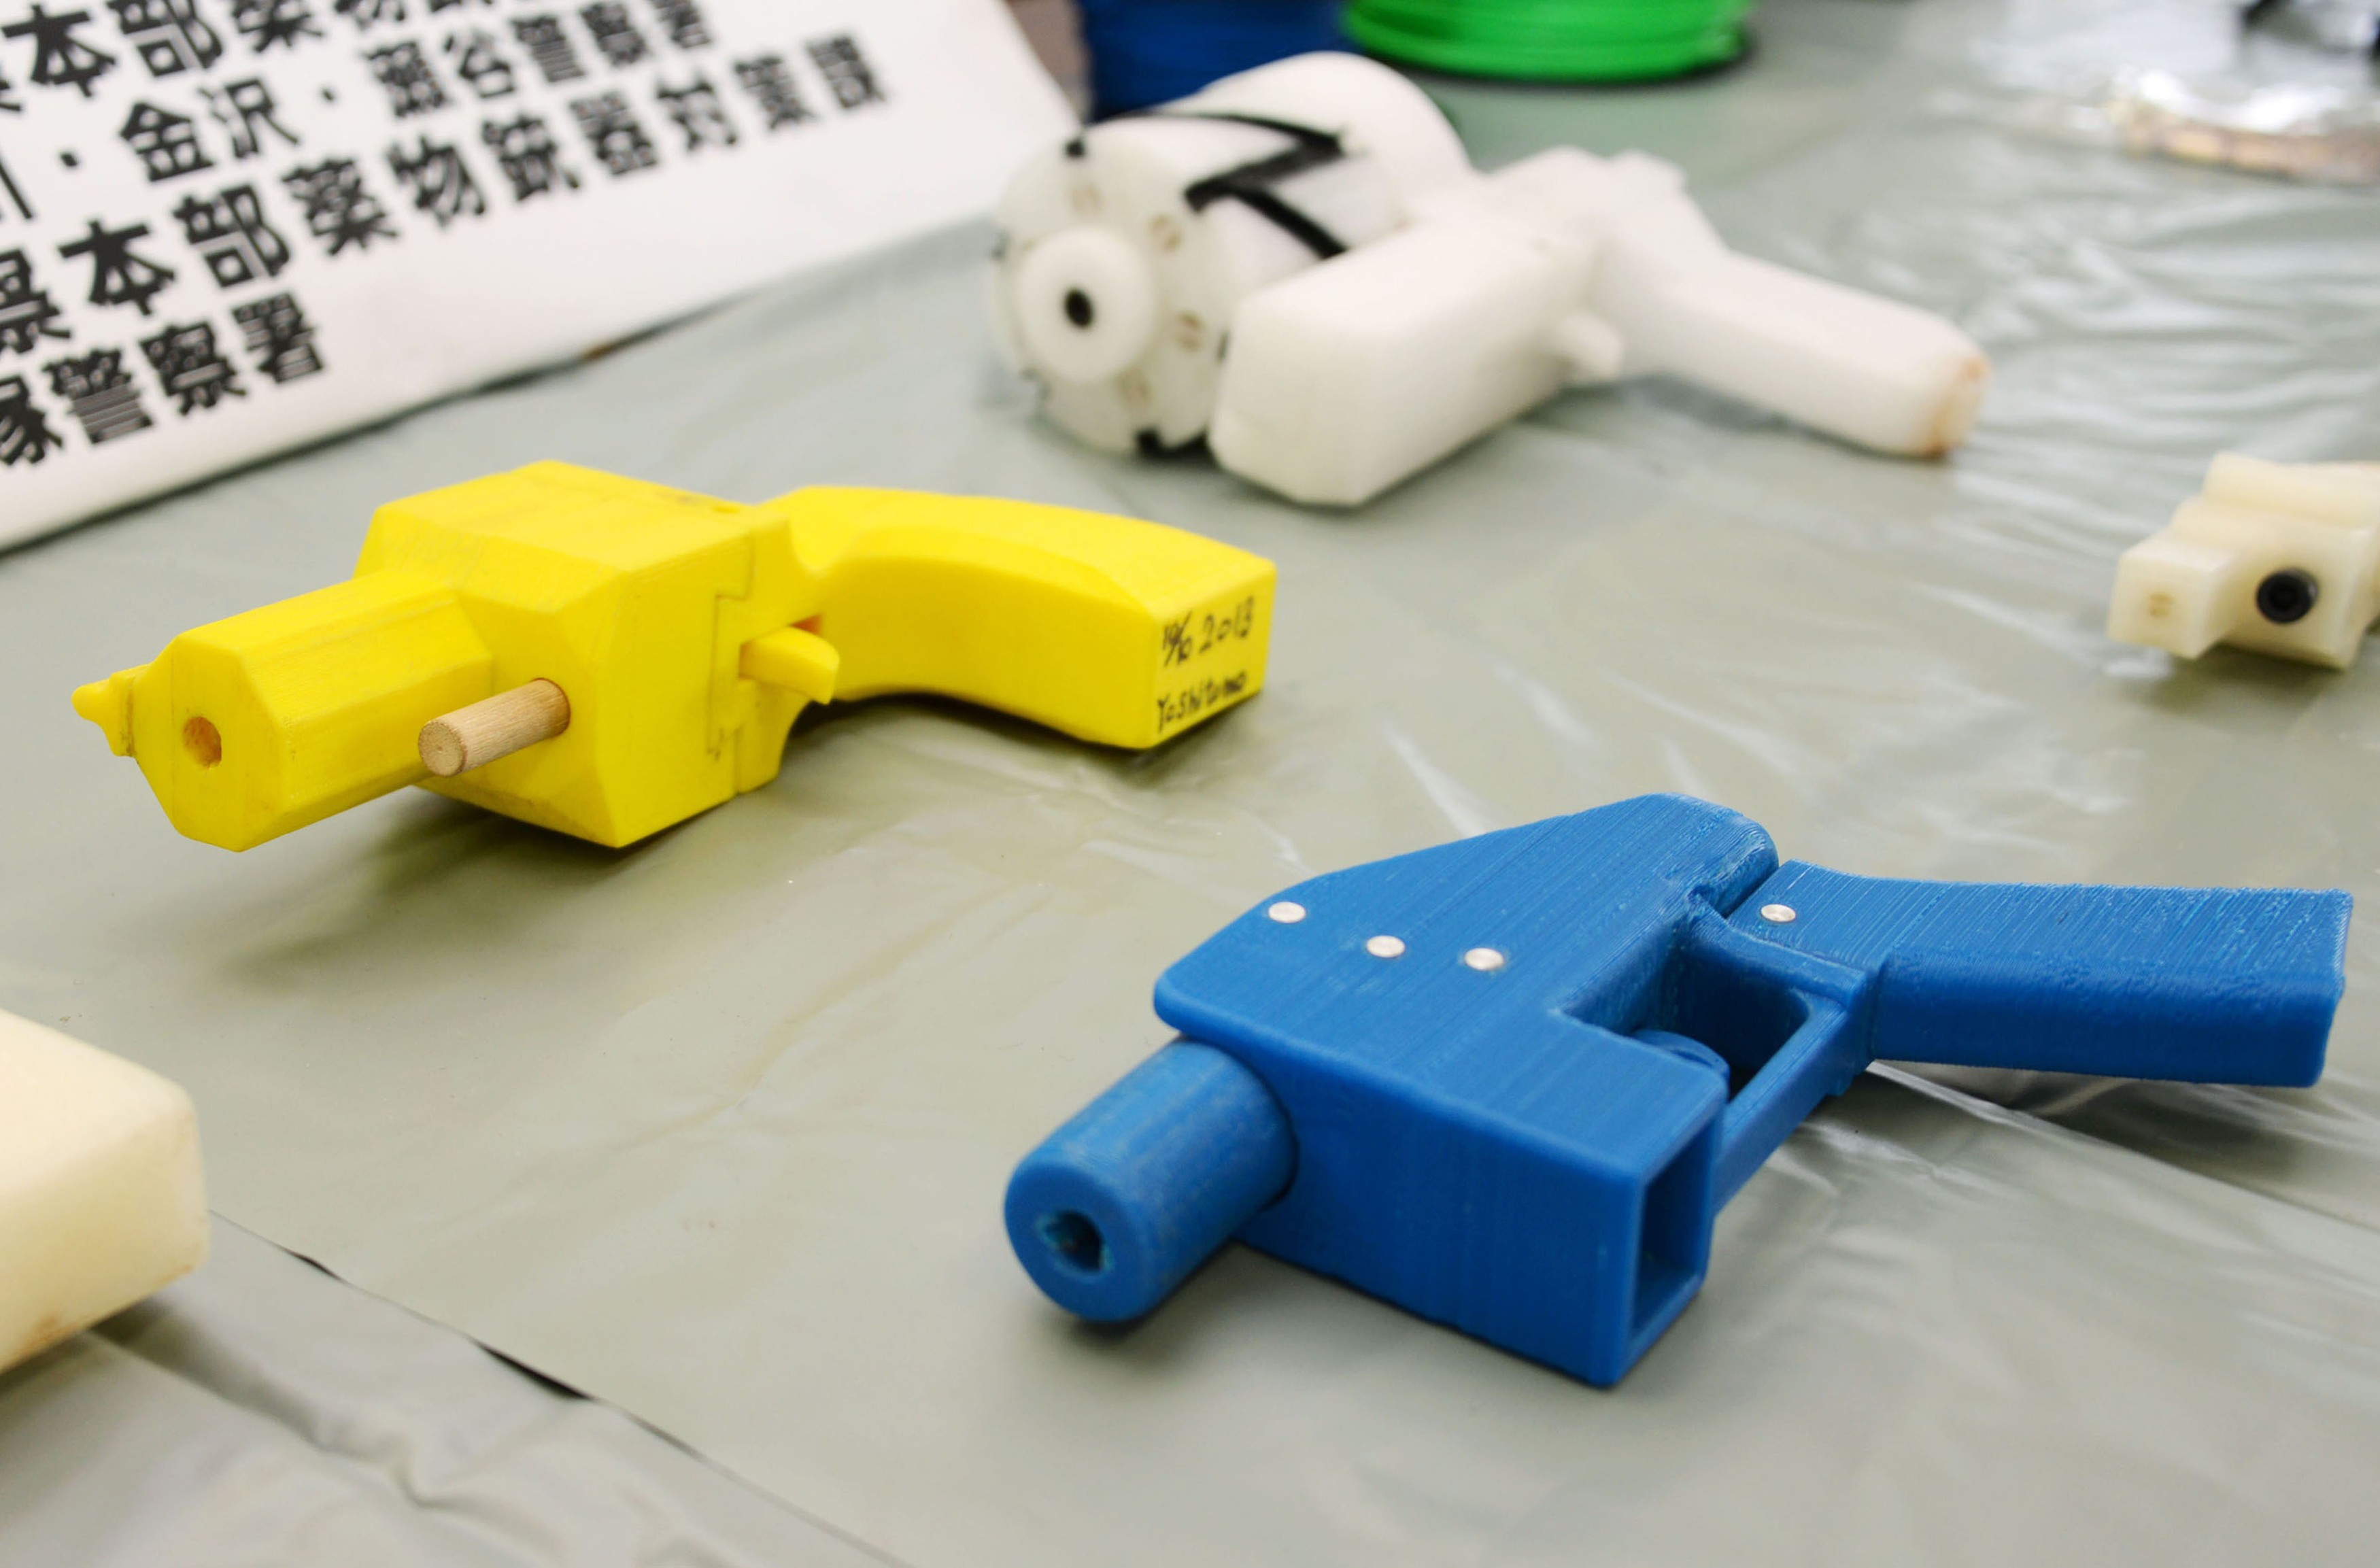 Seized plastic handguns which were created using 3D printing technology are displayed at Kanagawa police station in Yokohama, south of Tokyo, in this photo taken by Kyodo May 8, 2014. Yoshimoto Imura became the first man to be arrested in Japan for illegal possession of two guns he created himself using 3D printing technology, Japanese media said on Thursday. The 27-year-old, a college employee in the city of Kawasaki, was arrested after police found video online posted by Imura claiming to have produced his own guns. Gun possession is strictly regulated in Japan. Police raided Imura's home and found five guns, two of which could fire real bullets, Japanese media said. Mandatory credit REUTERS/Kyodo (JAPAN - Tags: CRIME LAW SCIENCE TECHNOLOGY TPX IMAGES OF THE DAY) ATTENTION EDITORS - THIS IMAGE HAS BEEN SUPPLIED BY A THIRD PARTY. FOR EDITORIAL USE ONLY. NOT FOR SALE FOR MARKETING OR ADVERTISING CAMPAIGNS. MANDATORY CREDIT. JAPAN OUT. NO COMMERCIAL OR EDITORIAL SALES IN JAPAN. THIS PICTURE IS DISTRIBUTED EXACTLY AS RECEIVED BY REUTERS, AS A SERVICE TO CLIENTS - RTR3OA4Z